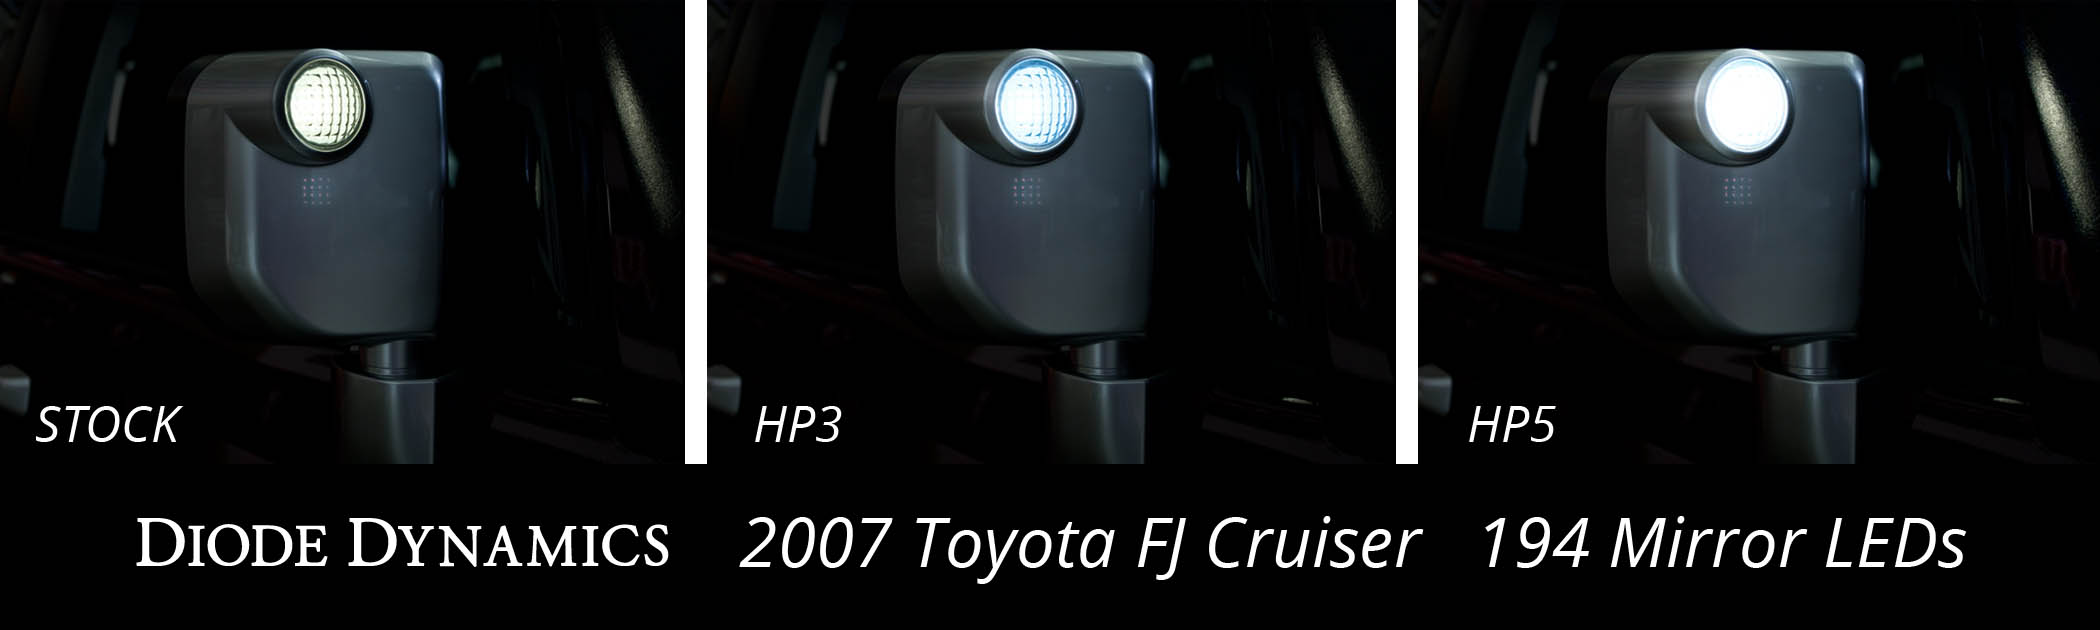 Video How To Install Toyota Fj Cruiser Mirror Light Leds